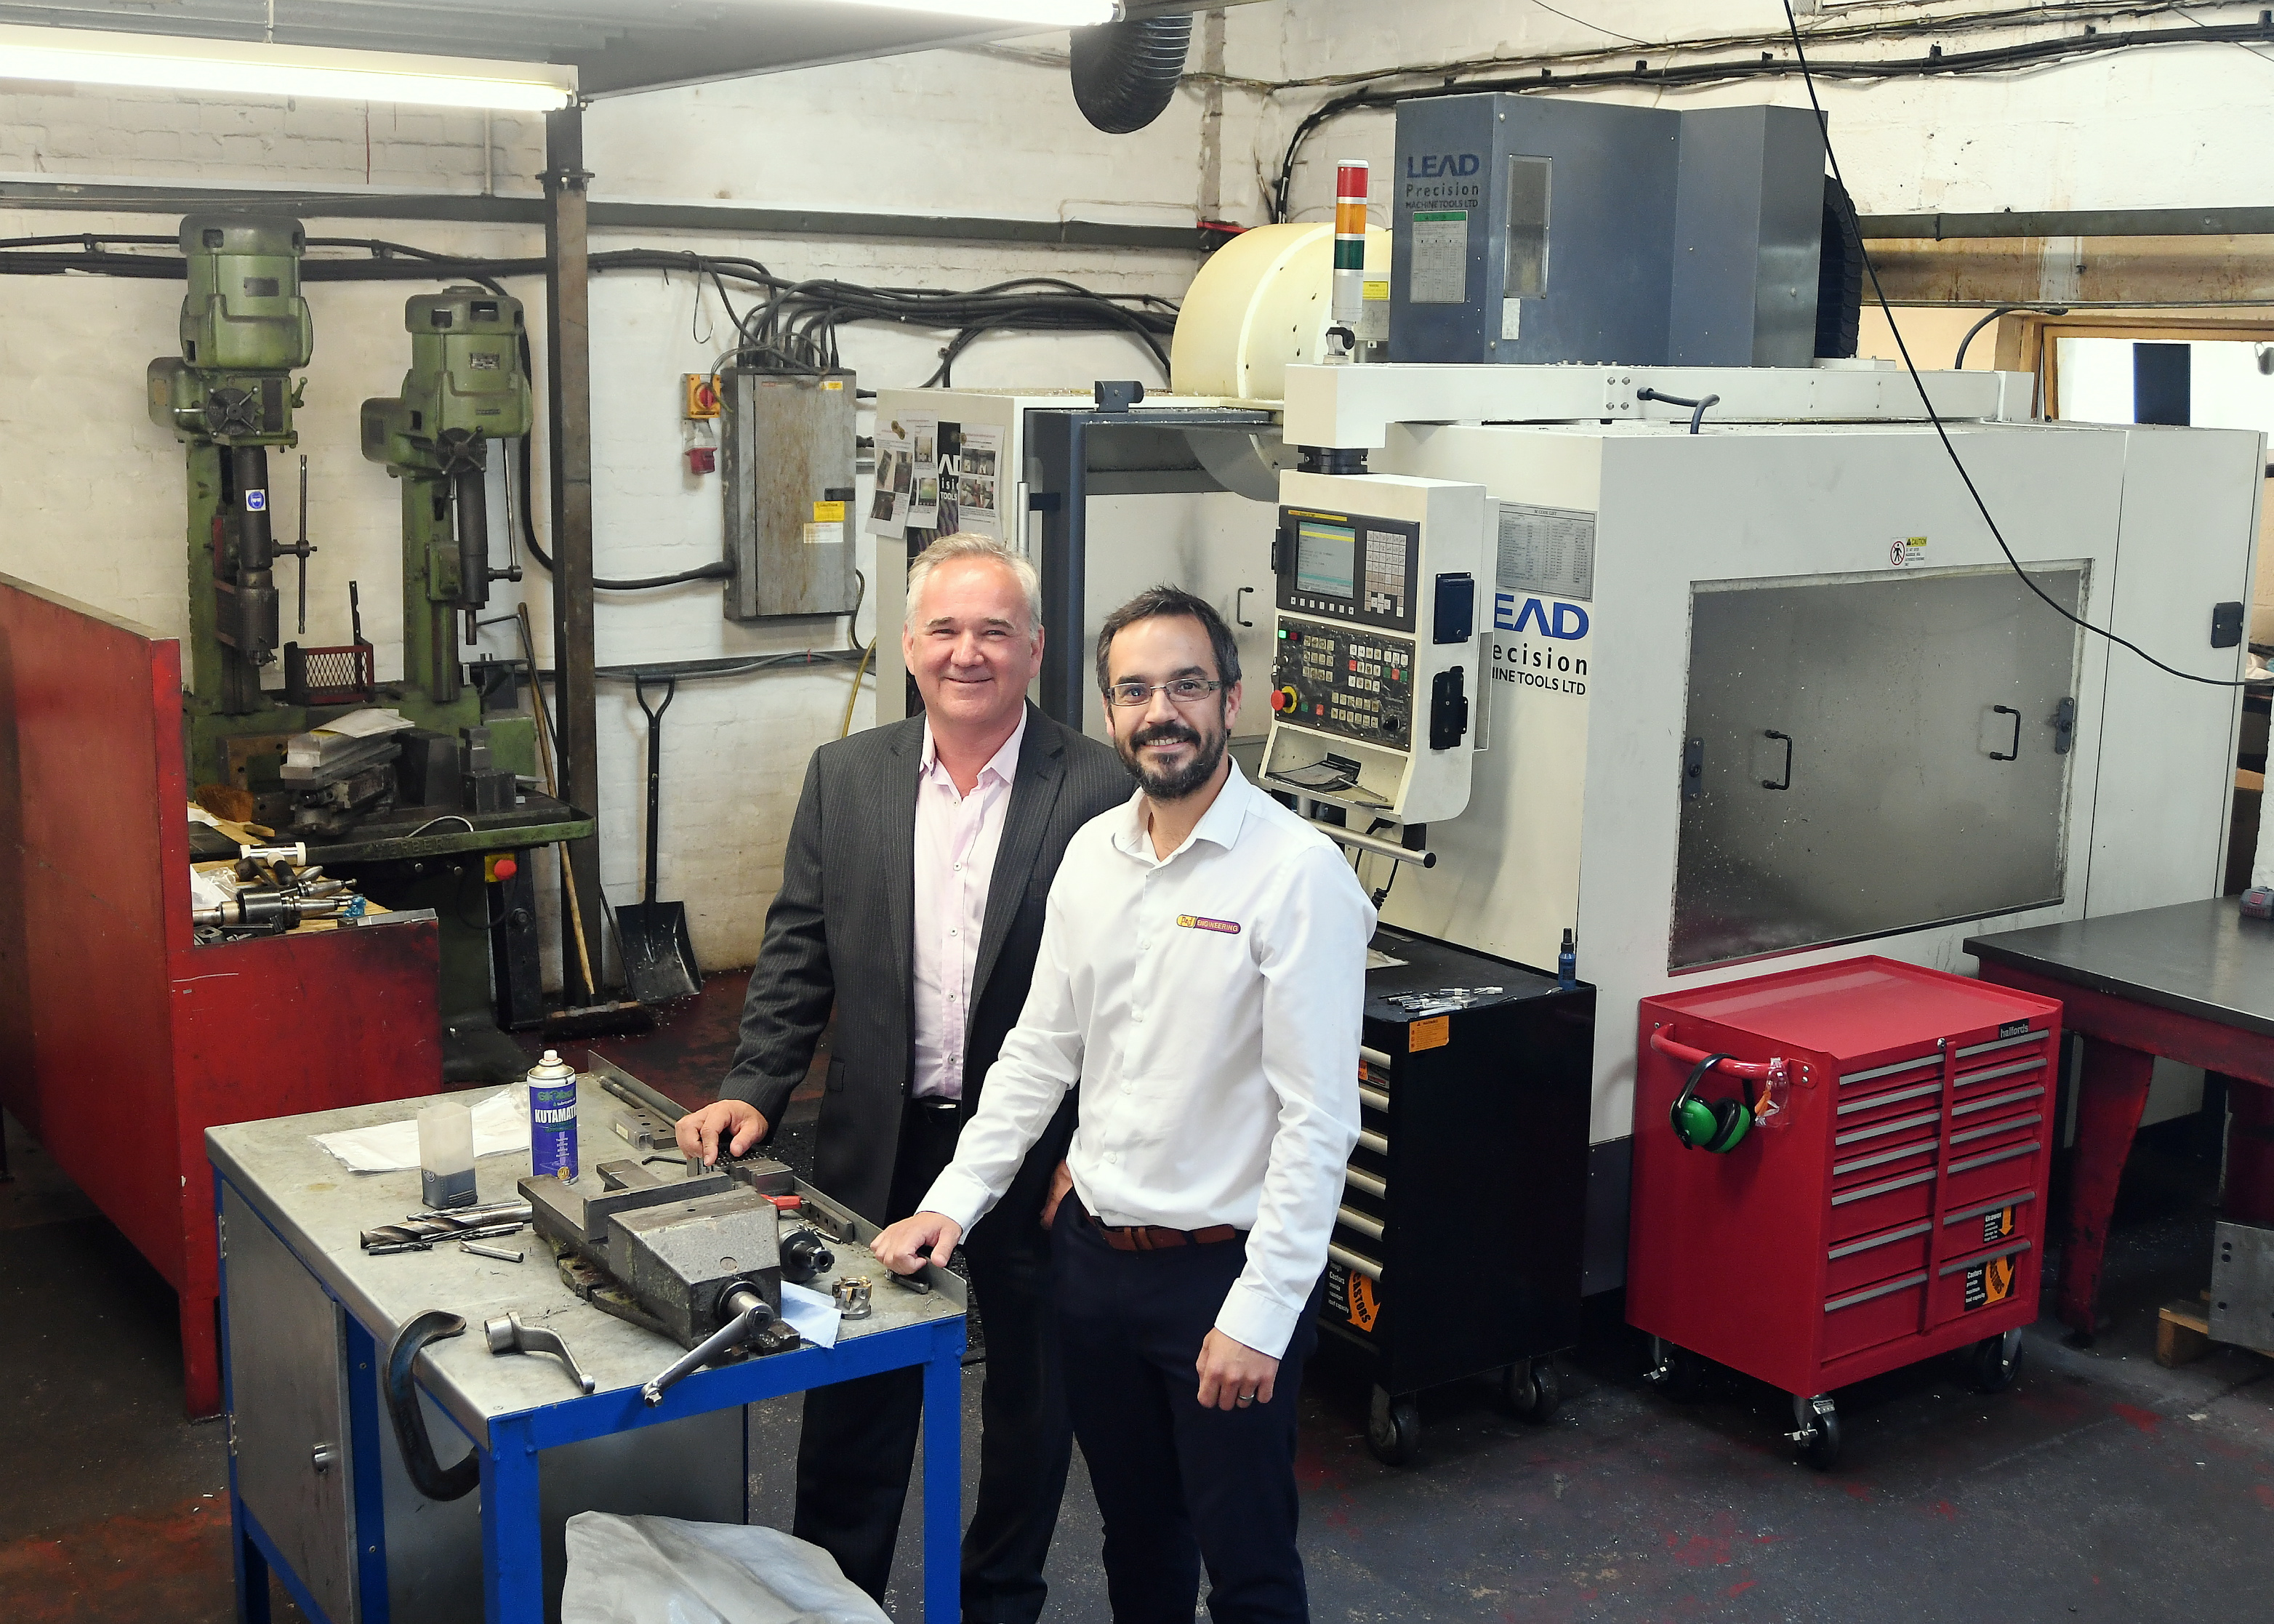 Warwickshire Engineering Firm is Growing after Business Ready Support